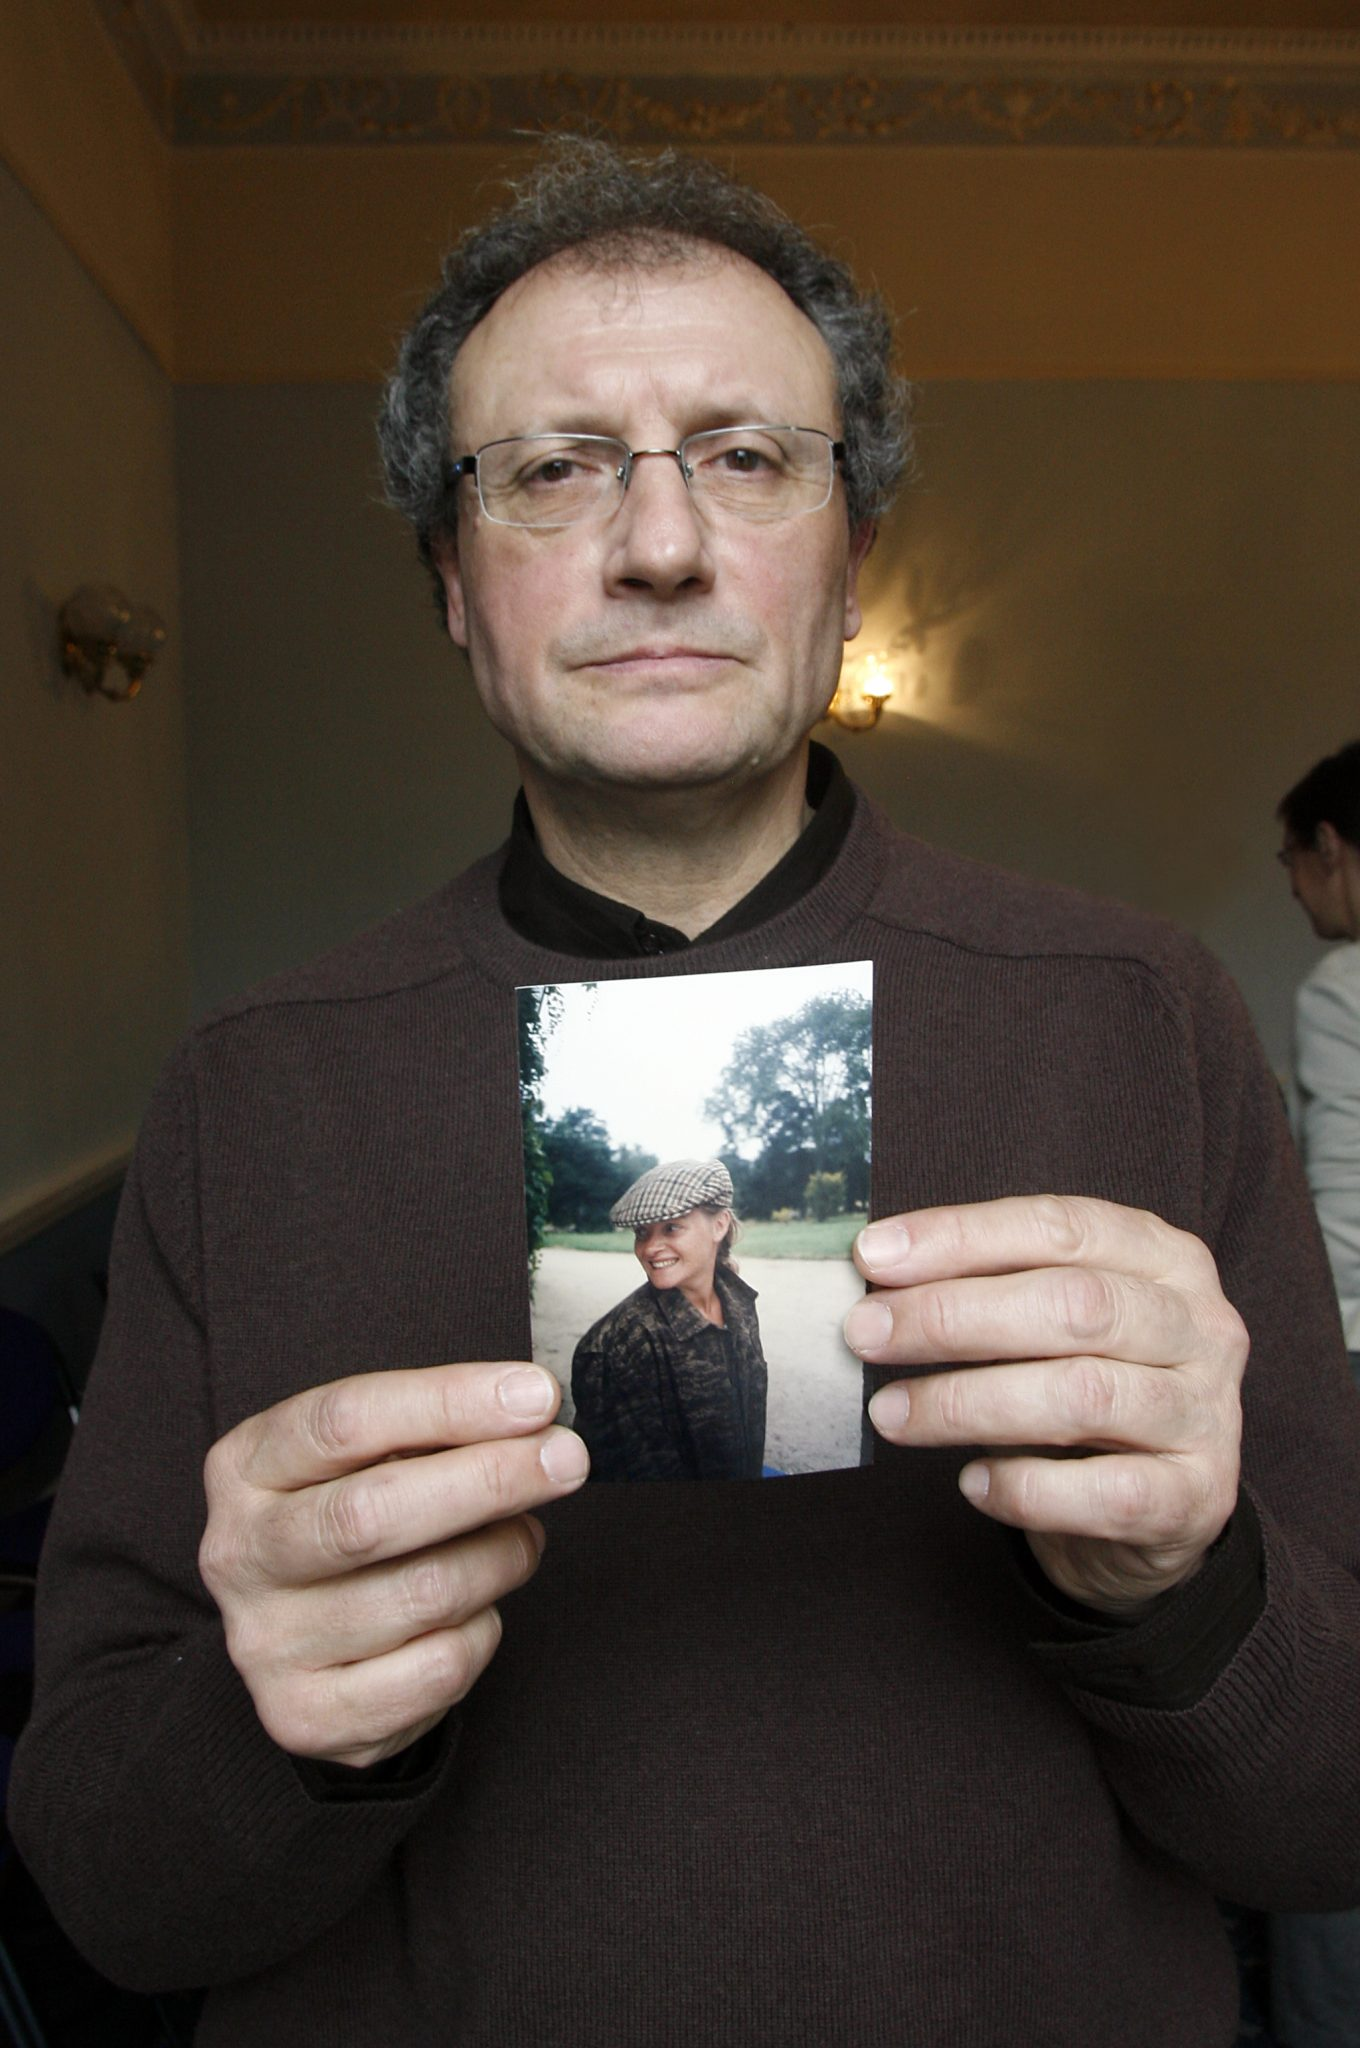 Jean-Pierre Gazeau holds an image of his niece, Sophie Tuscan Du Plantier, at the launch of of ASSOPH - the Association For the Truth About Sophie's Murder - in Dublin in 2008.